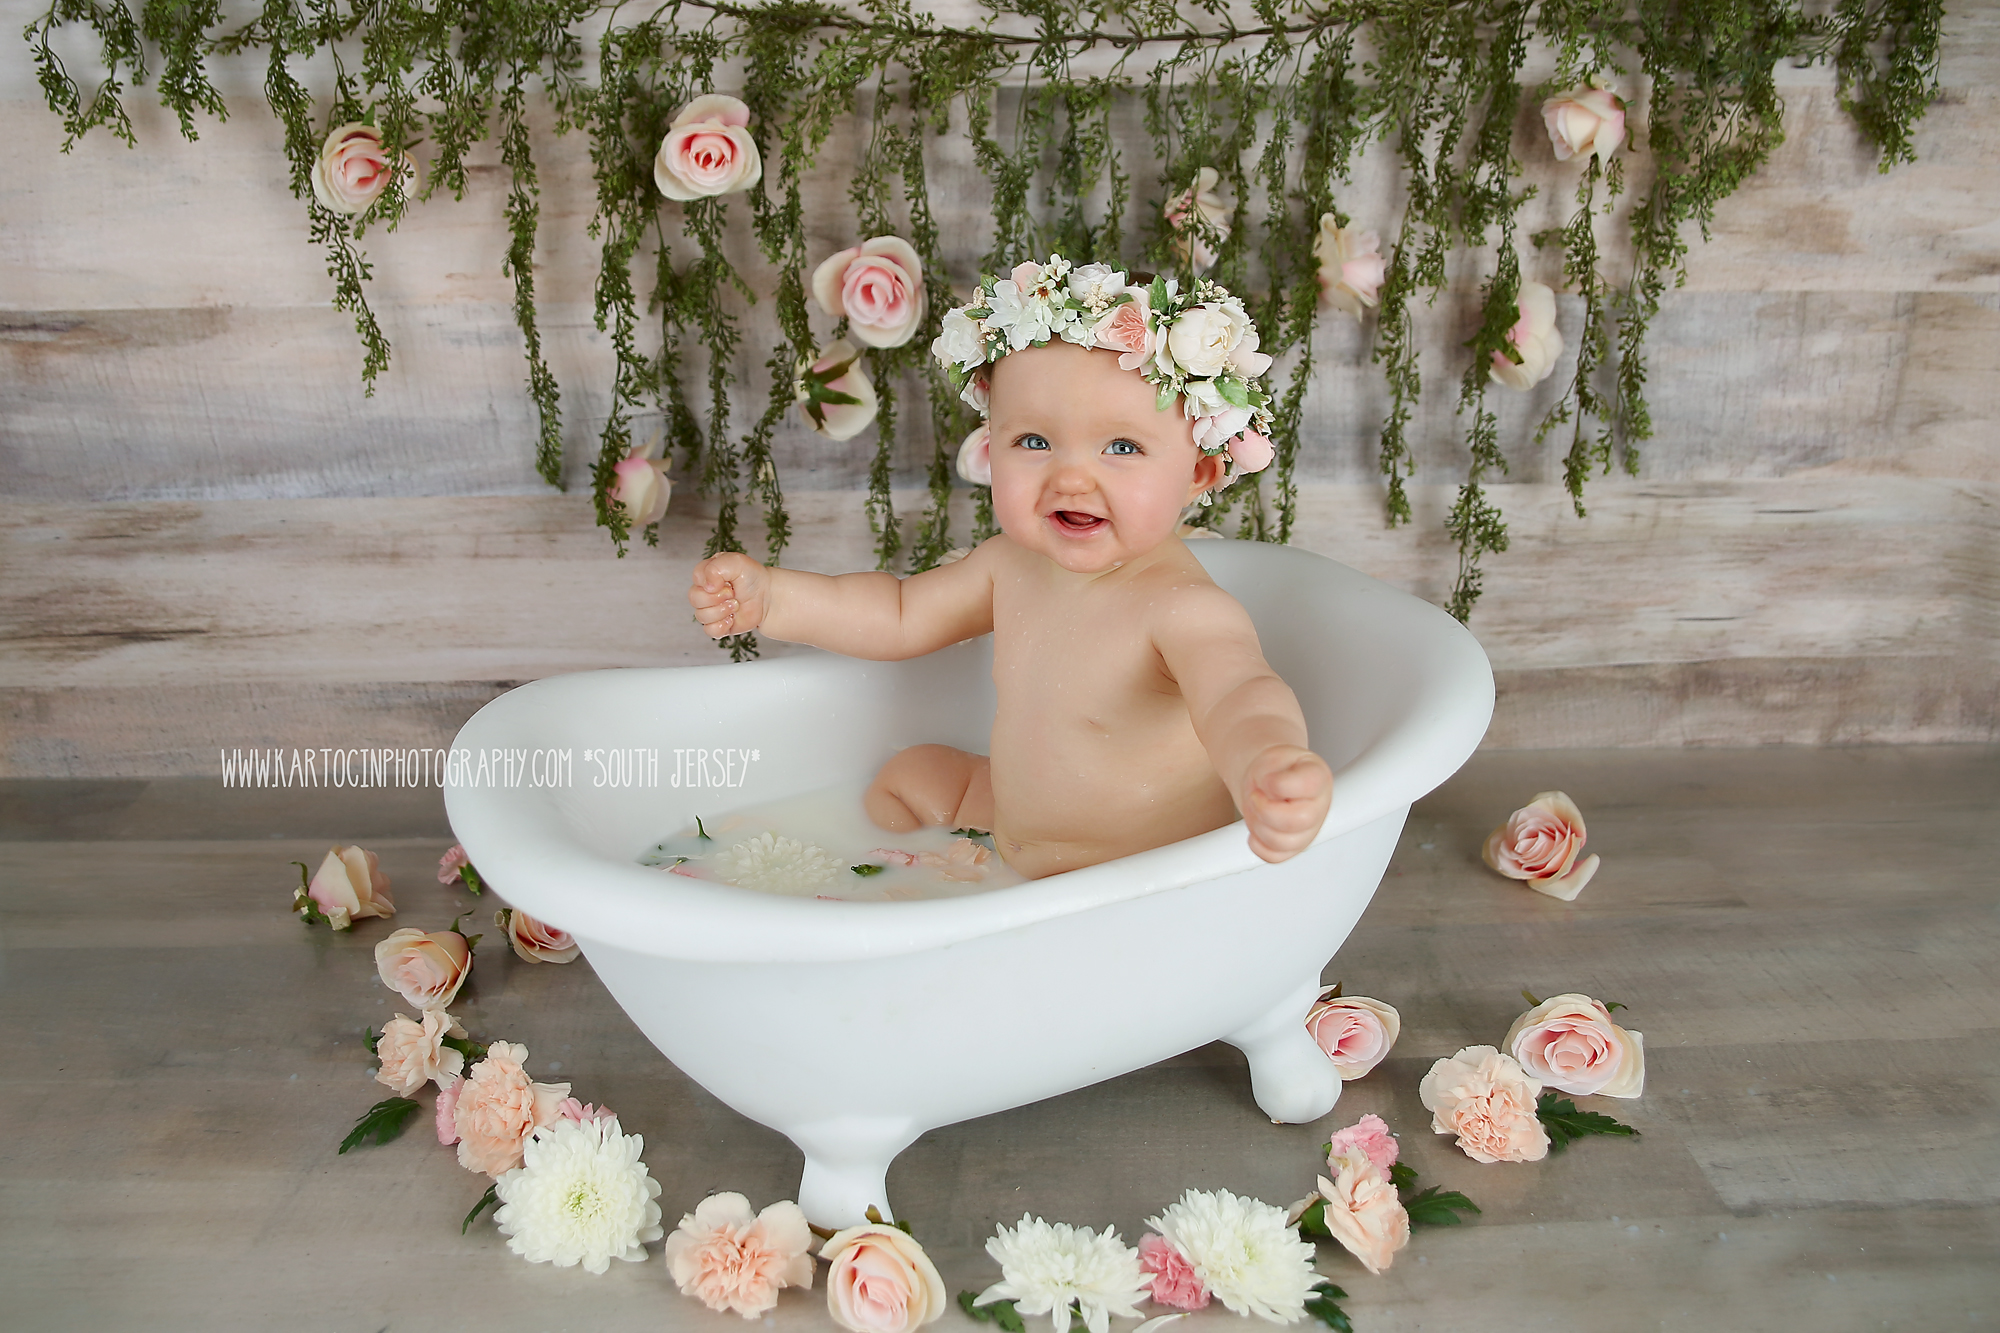 South Jersey Photographer, Milk Bath